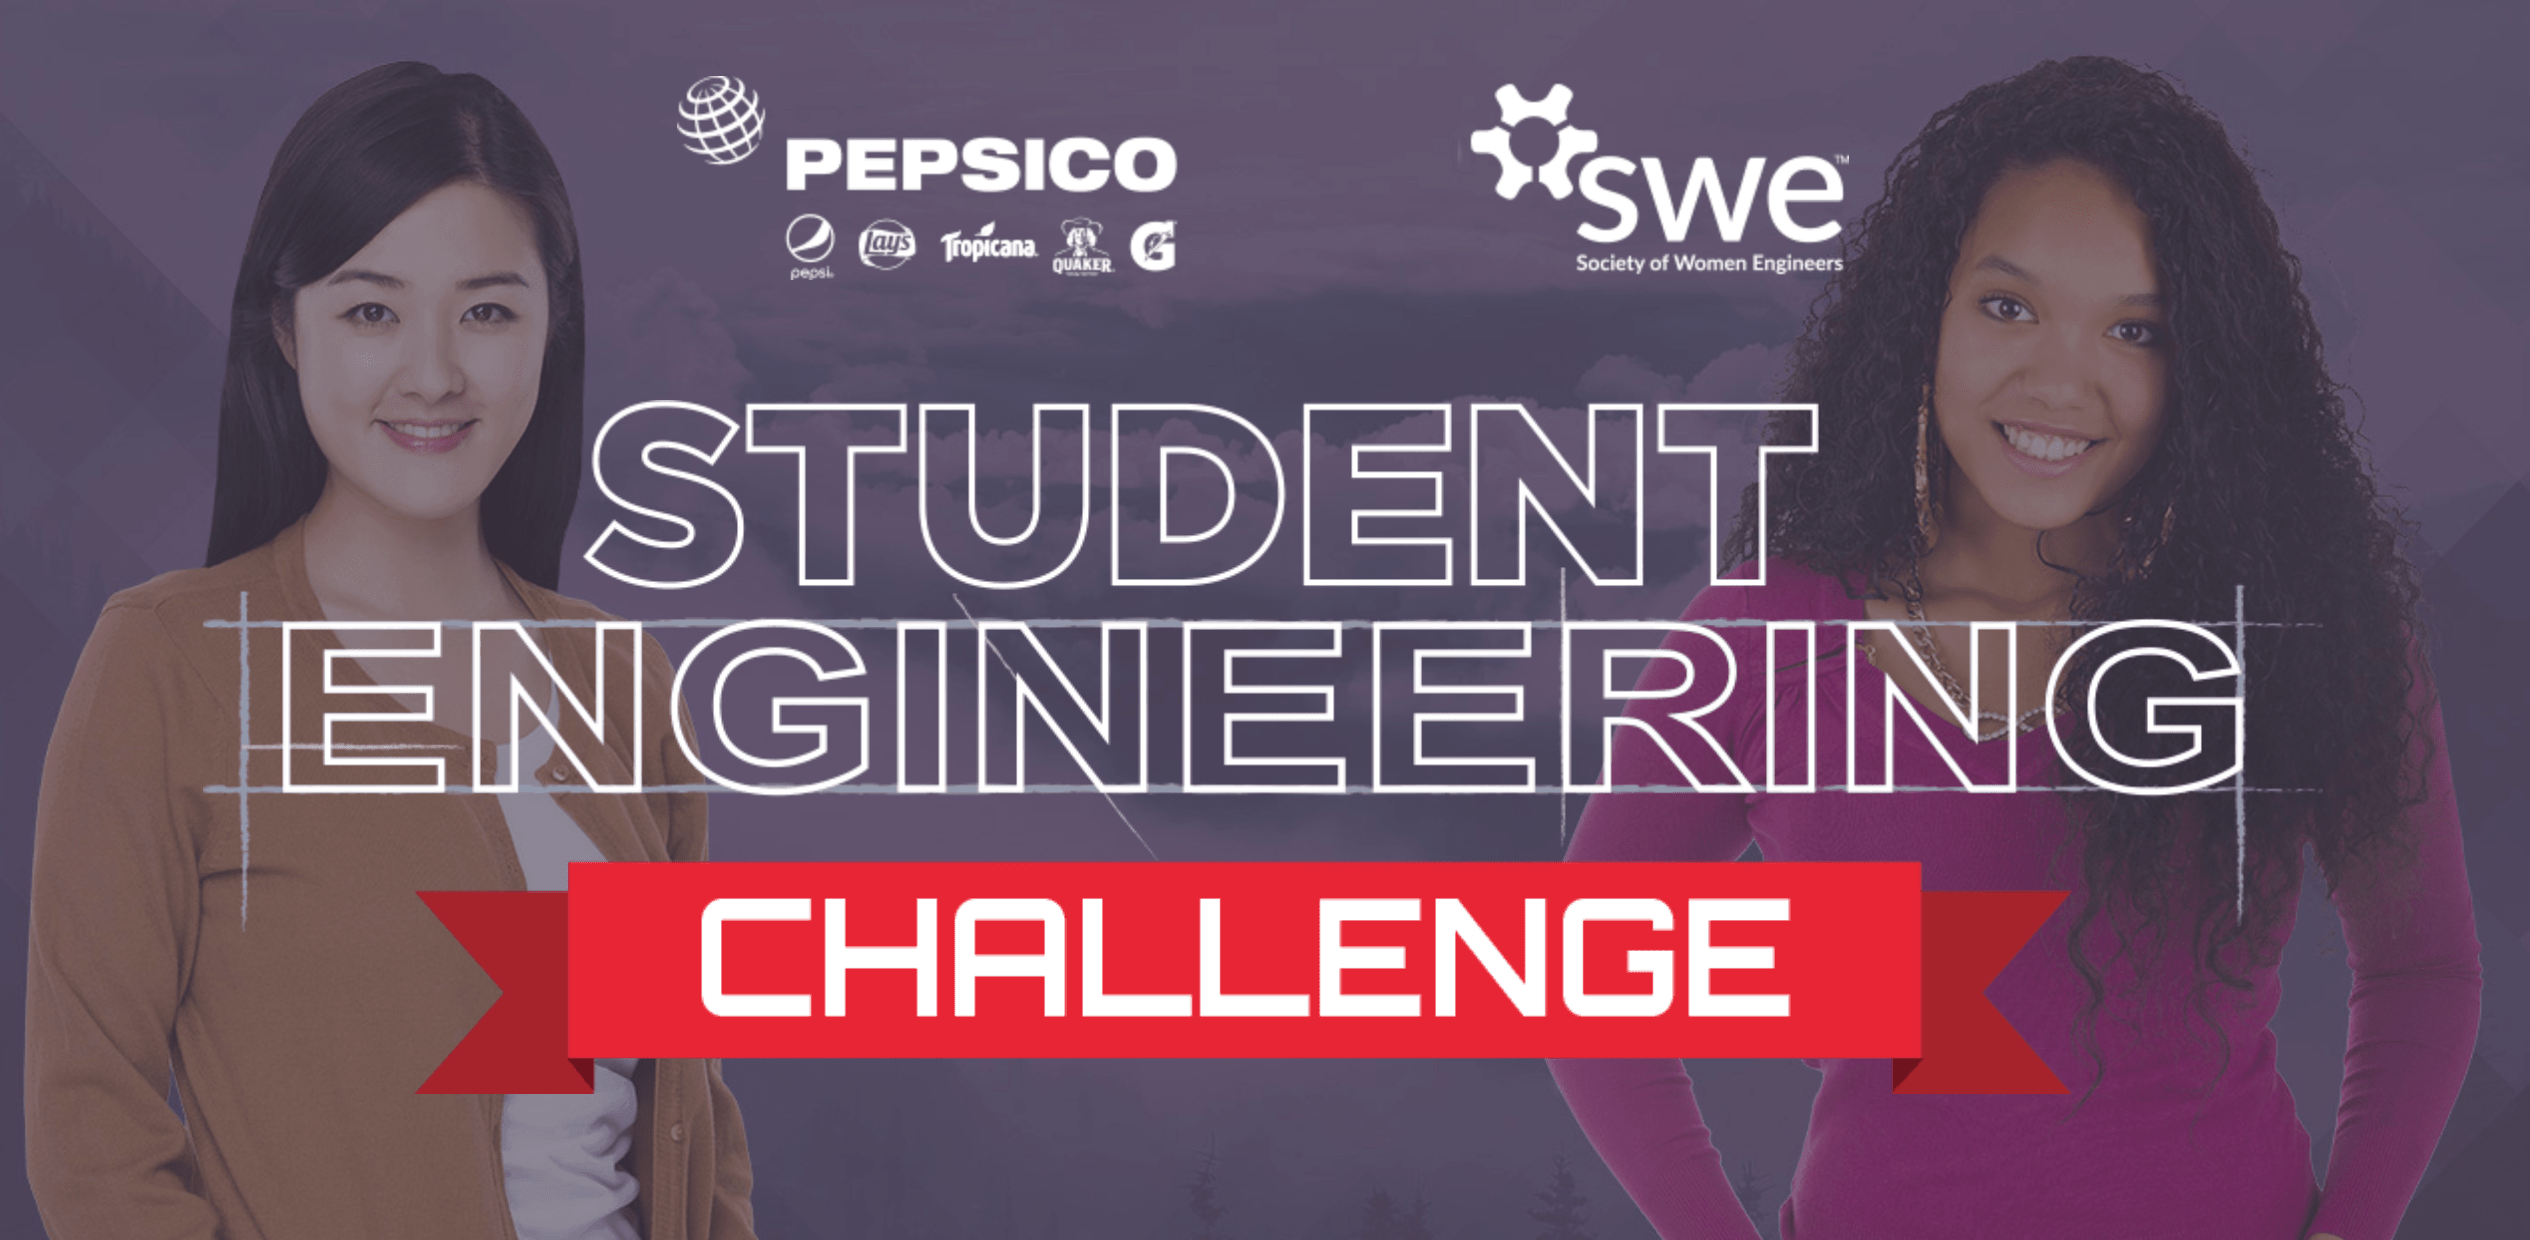 Encouraging Women in STEM: PepsiCo and SWE Kick-Off Annual Student Engineering Challenge []